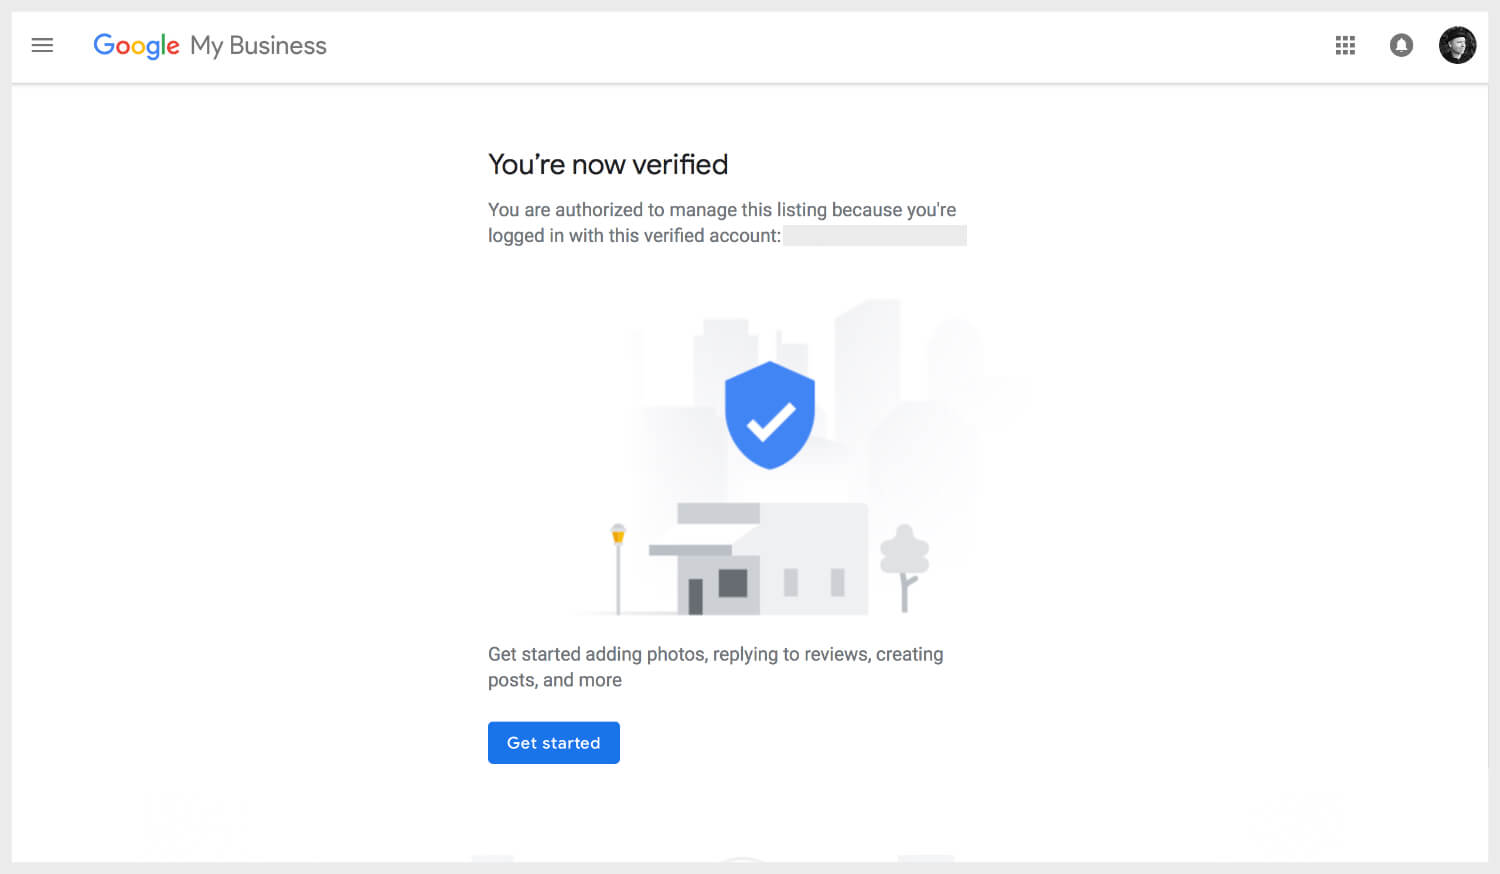 You're now verified on Google My Business